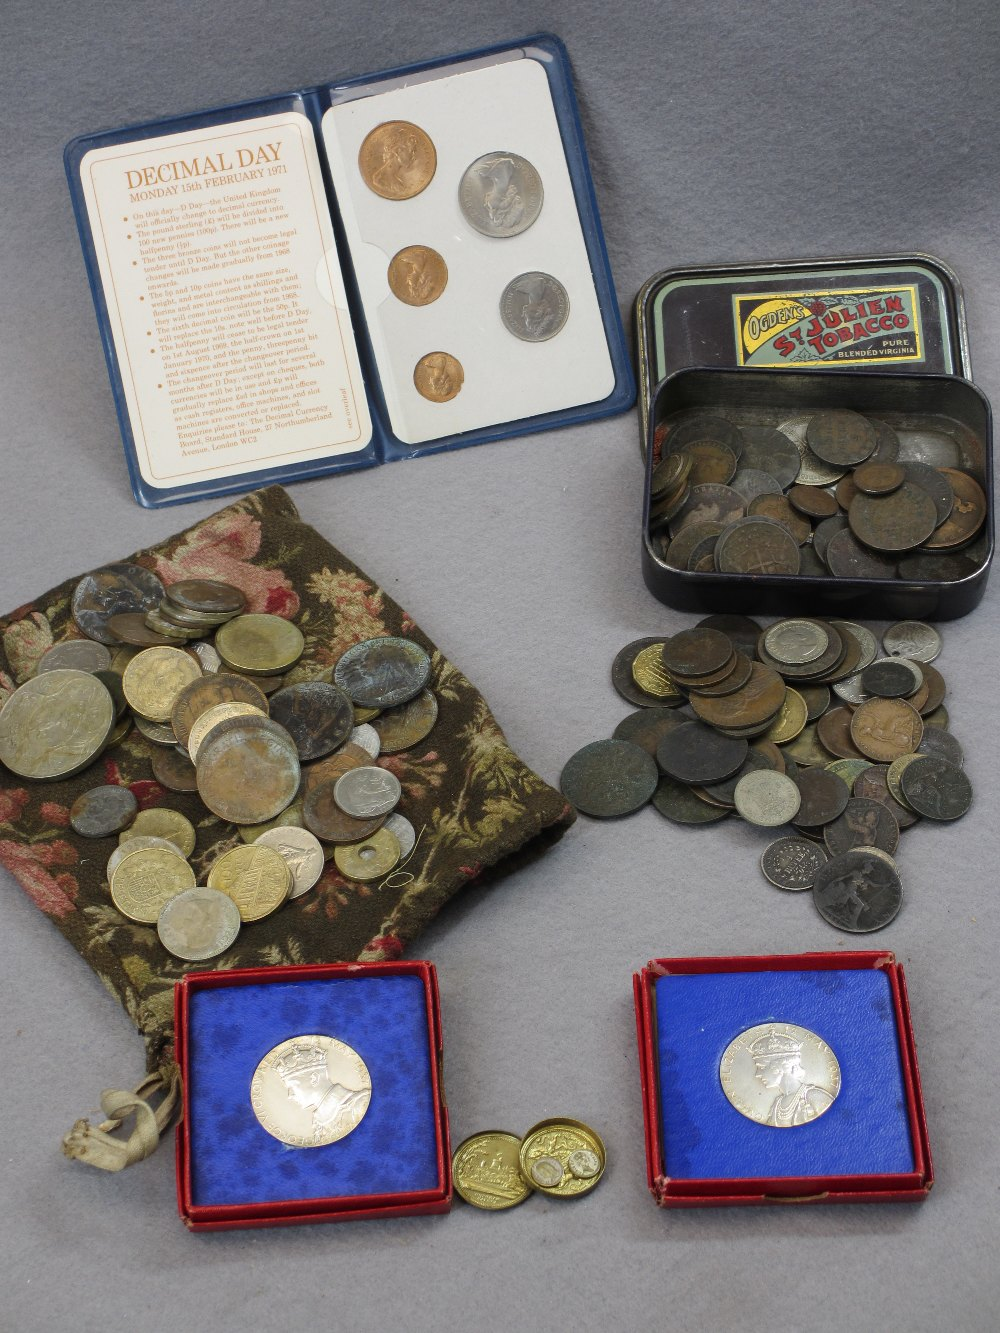 VINTAGE & LATER BRITISH/CONTINENTAL COINS & COMMEMORATIVES - two boxed 1937 George VI Coronation